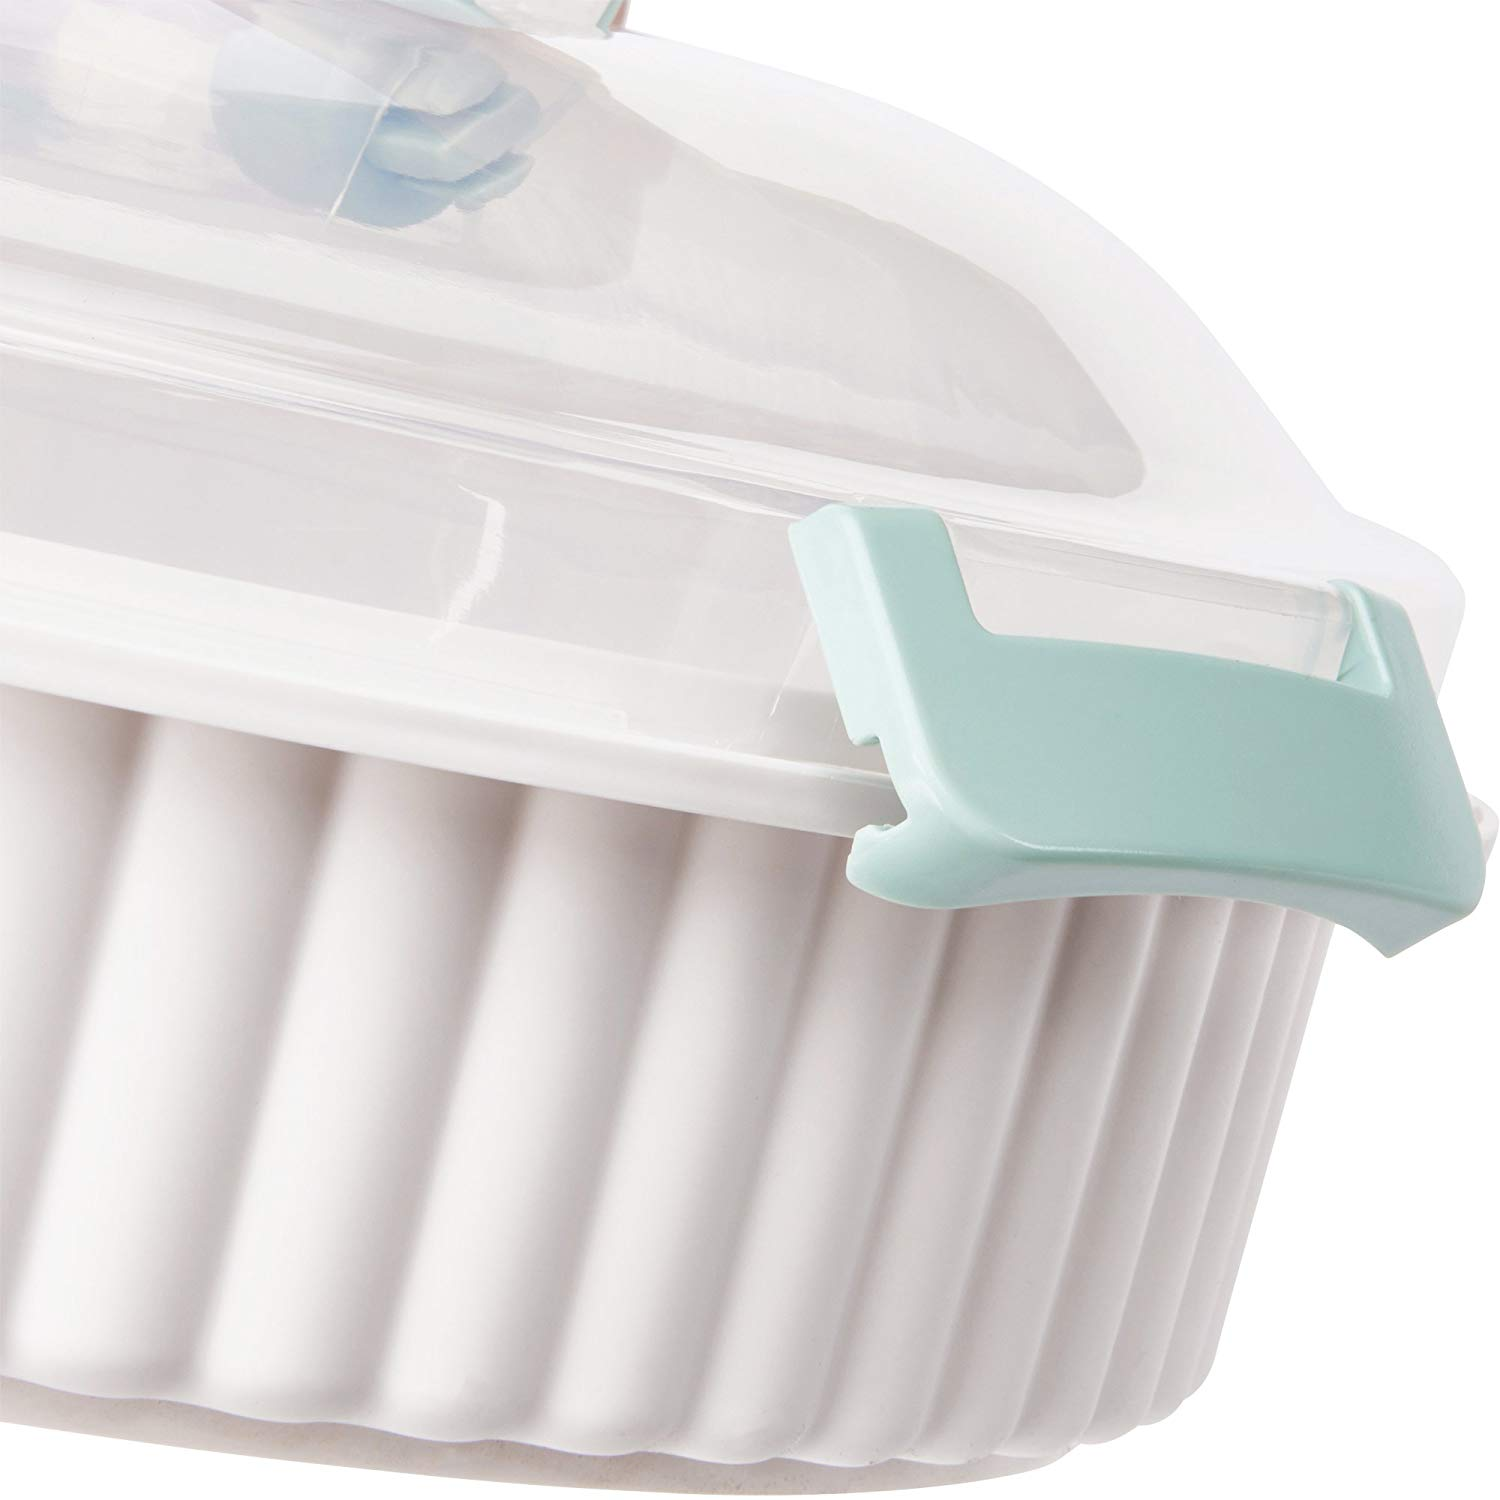 BPA free by Sweet Creations 12 L x 12 W x 4-1//4 H Pie Carrier by Sweet Creationsn 2-piece-set